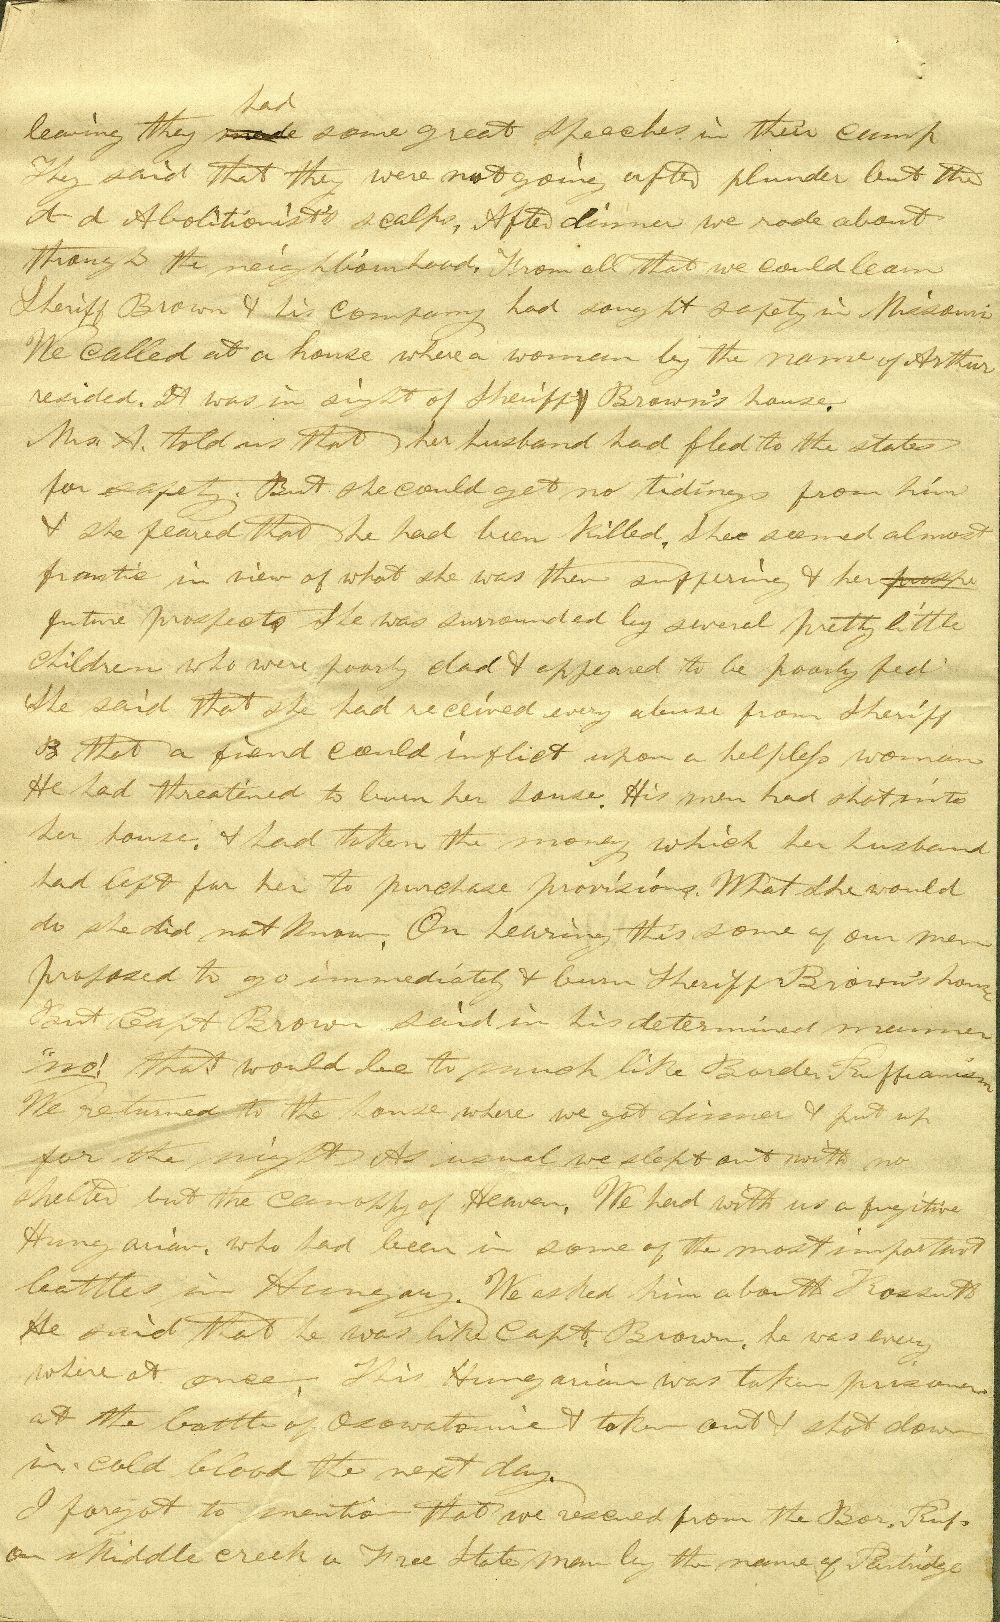 C. G. Allen's response to Redpath and Hinton's call for information about John Brown - 12